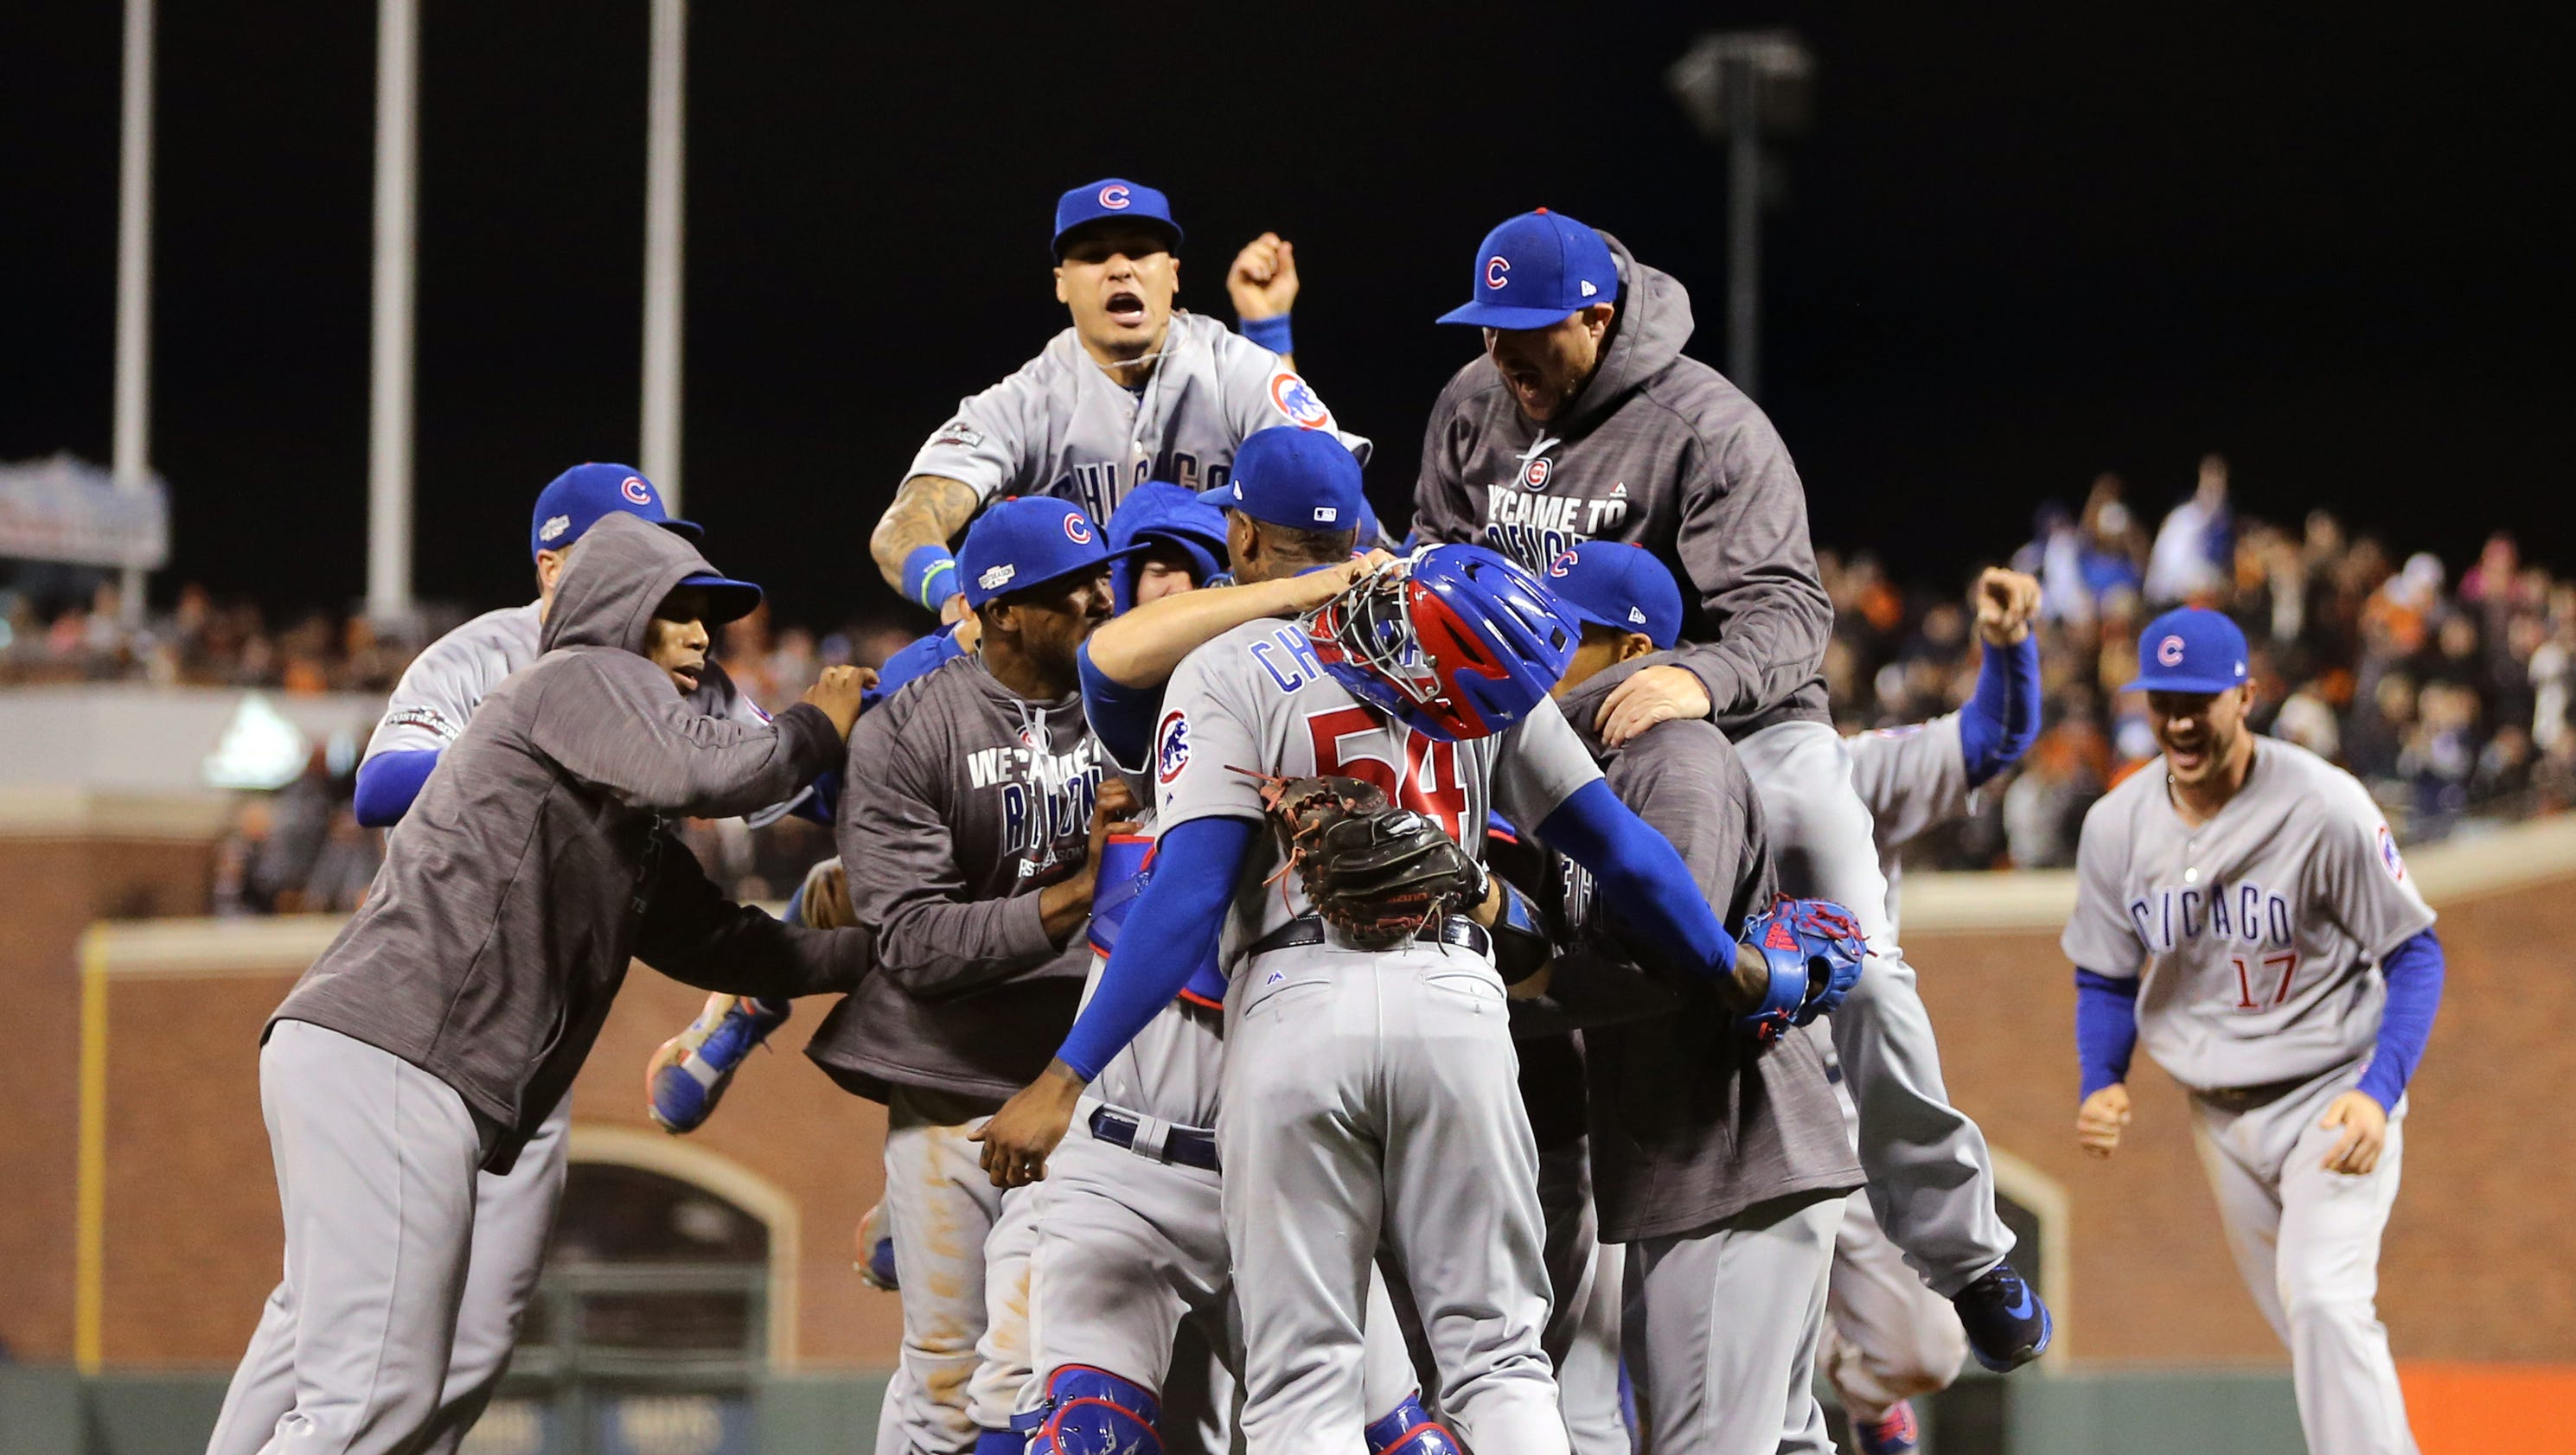 Cubs rally in ninth, eliminate Giants to advance to NLCS